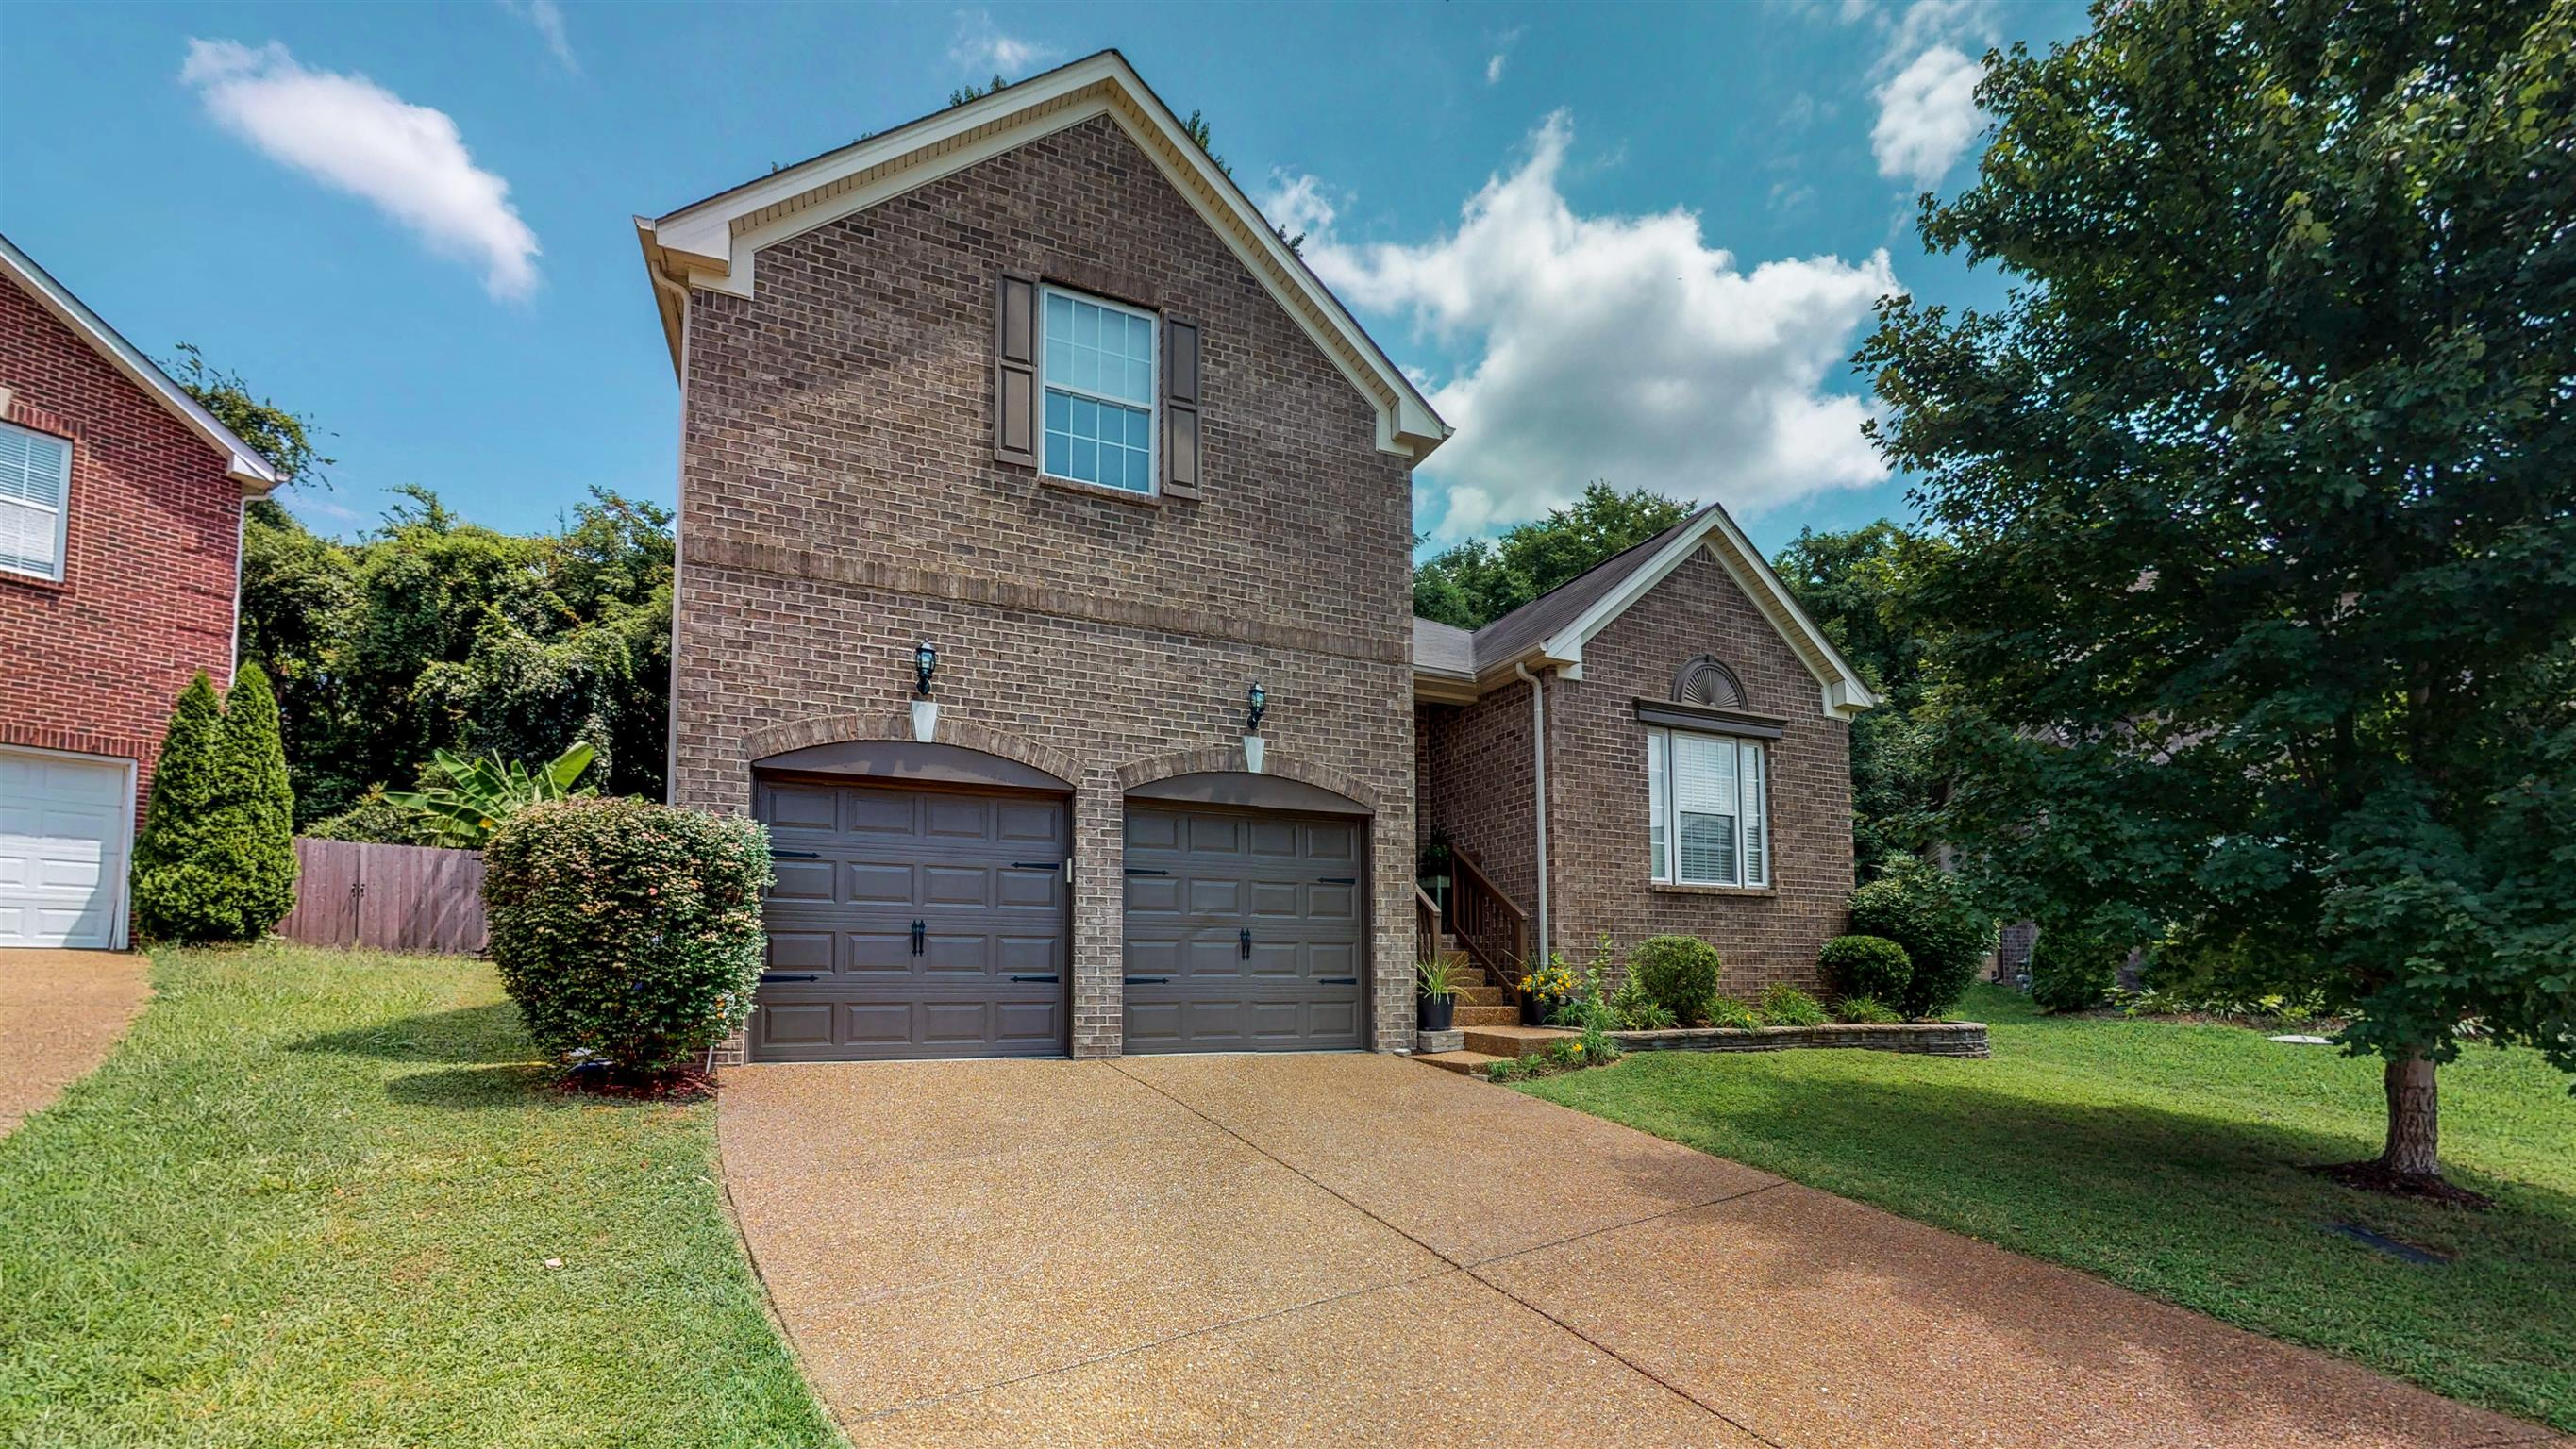 308 Rachels Meadow Ct, Hermitage, TN 37076 - Hermitage, TN real estate listing